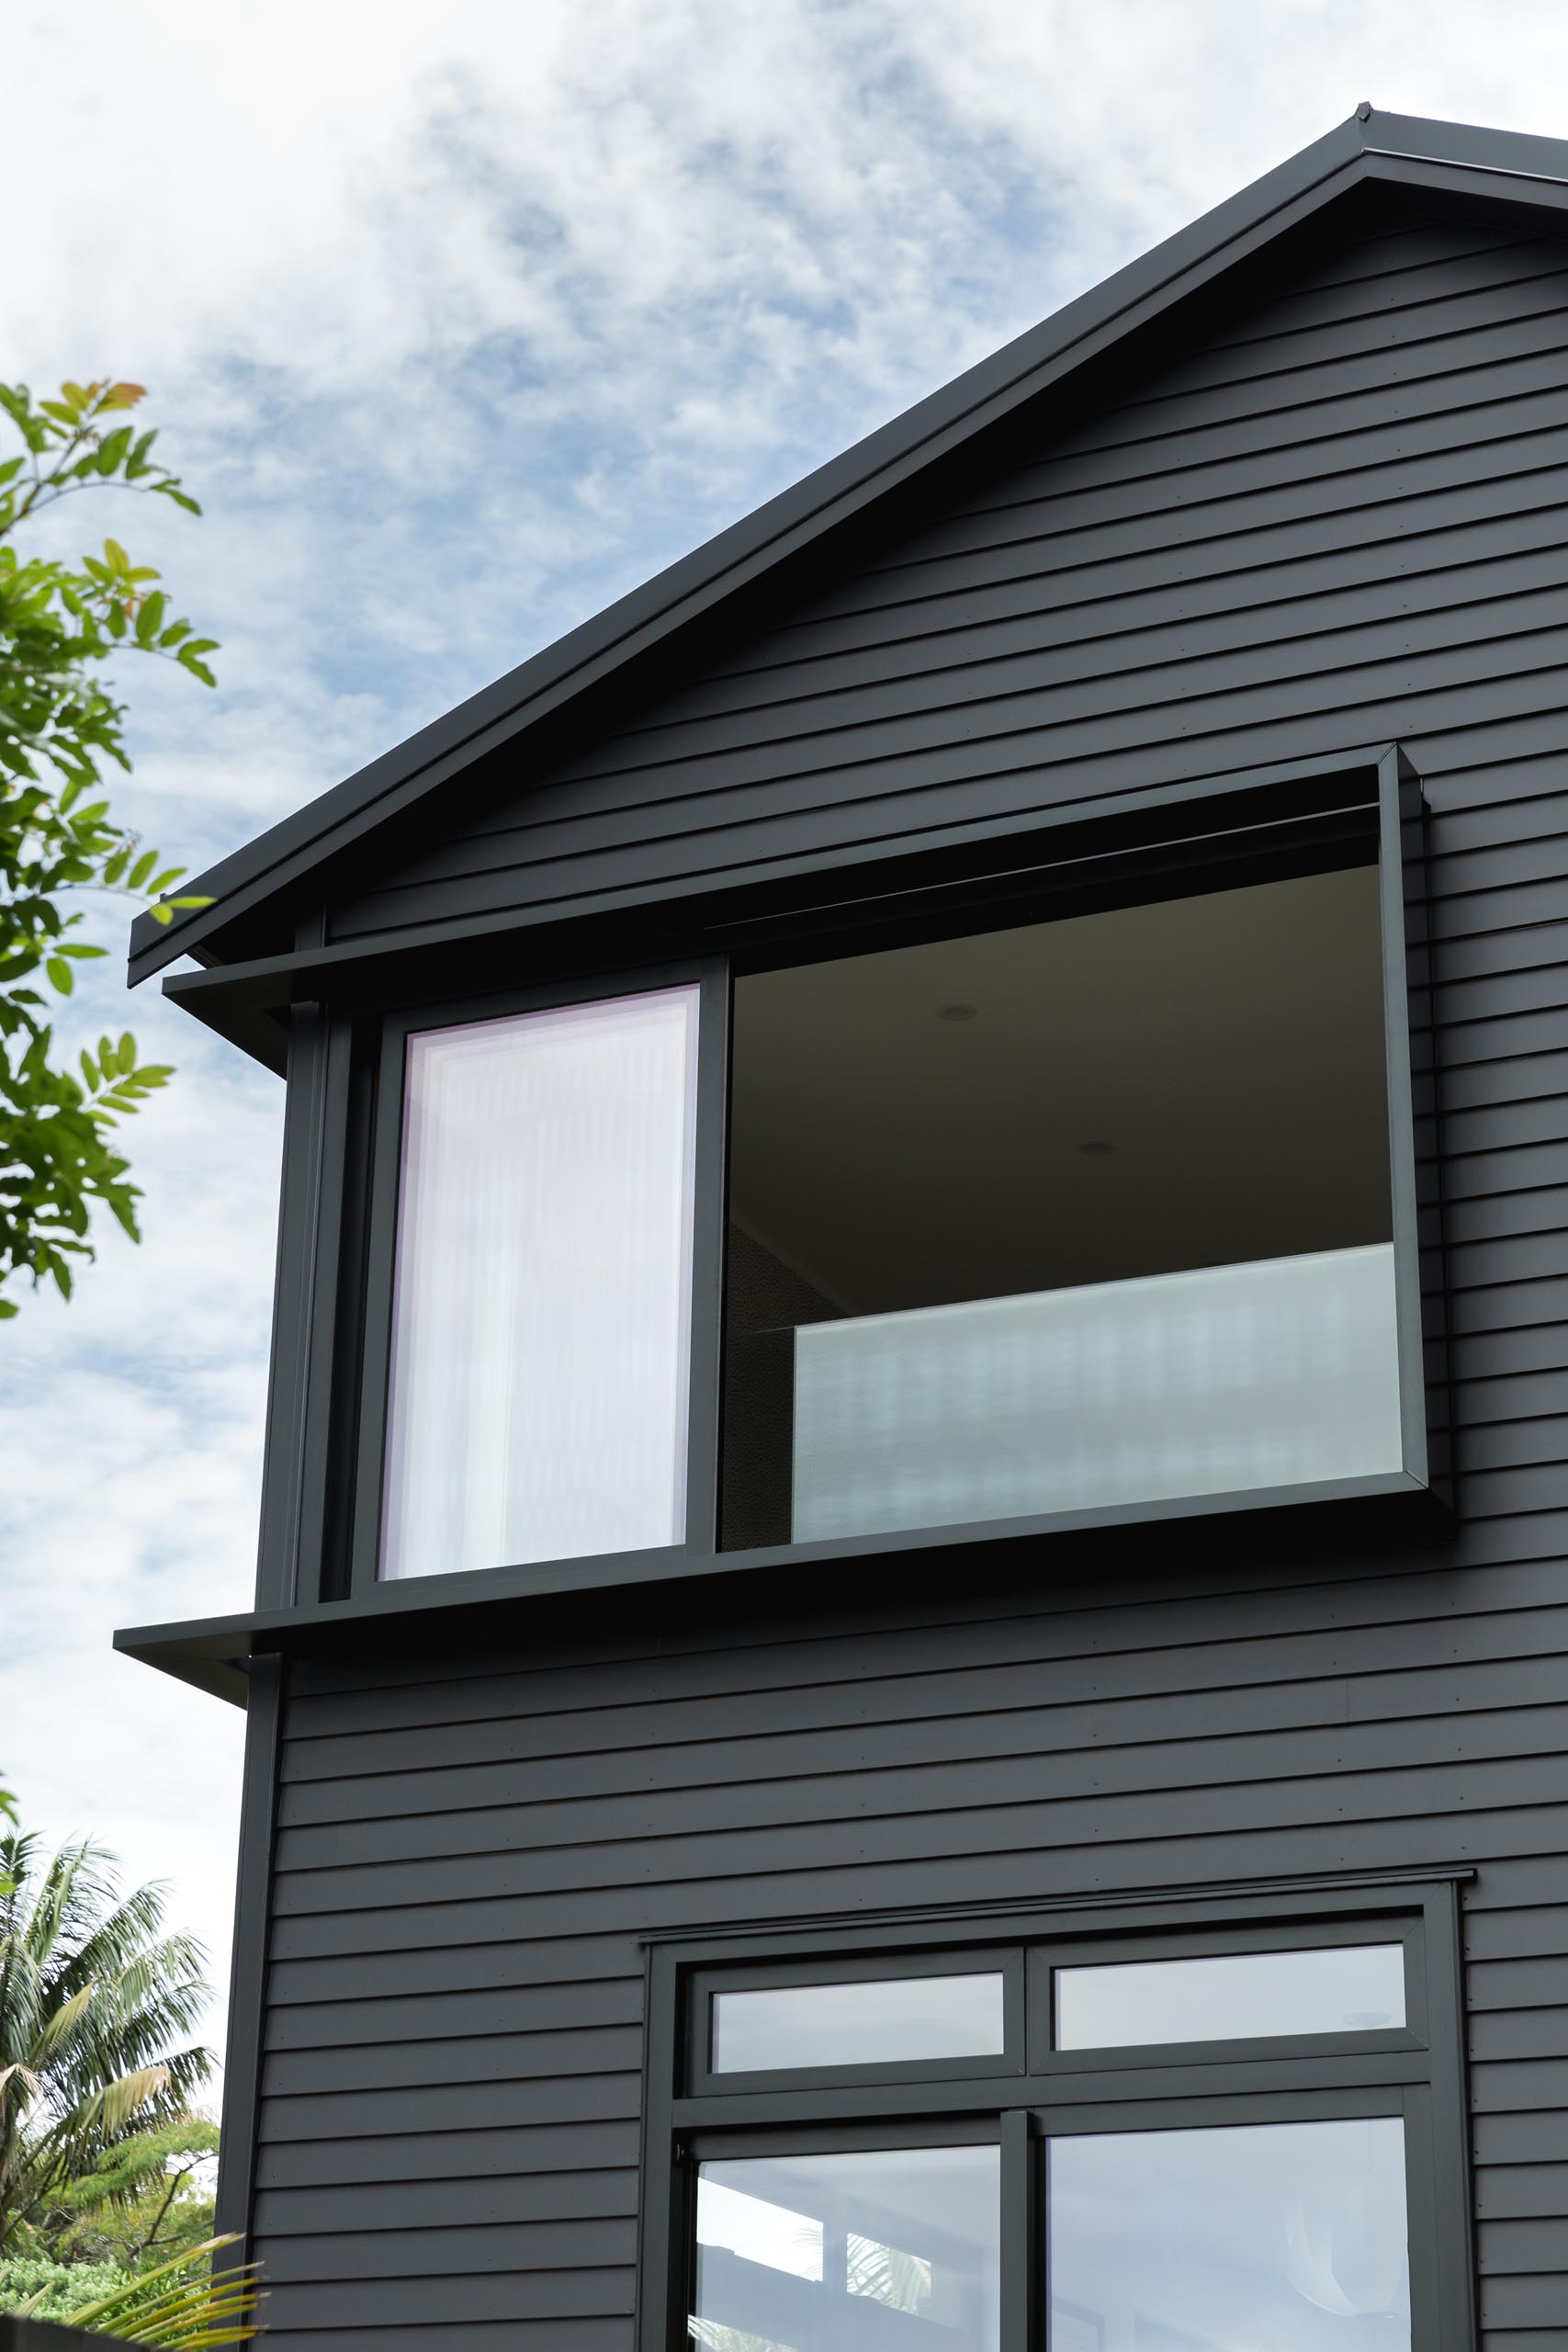 The window surround details of this modern black house are a common feature in the area, and were used to create additional light and shade detailing to the facade.